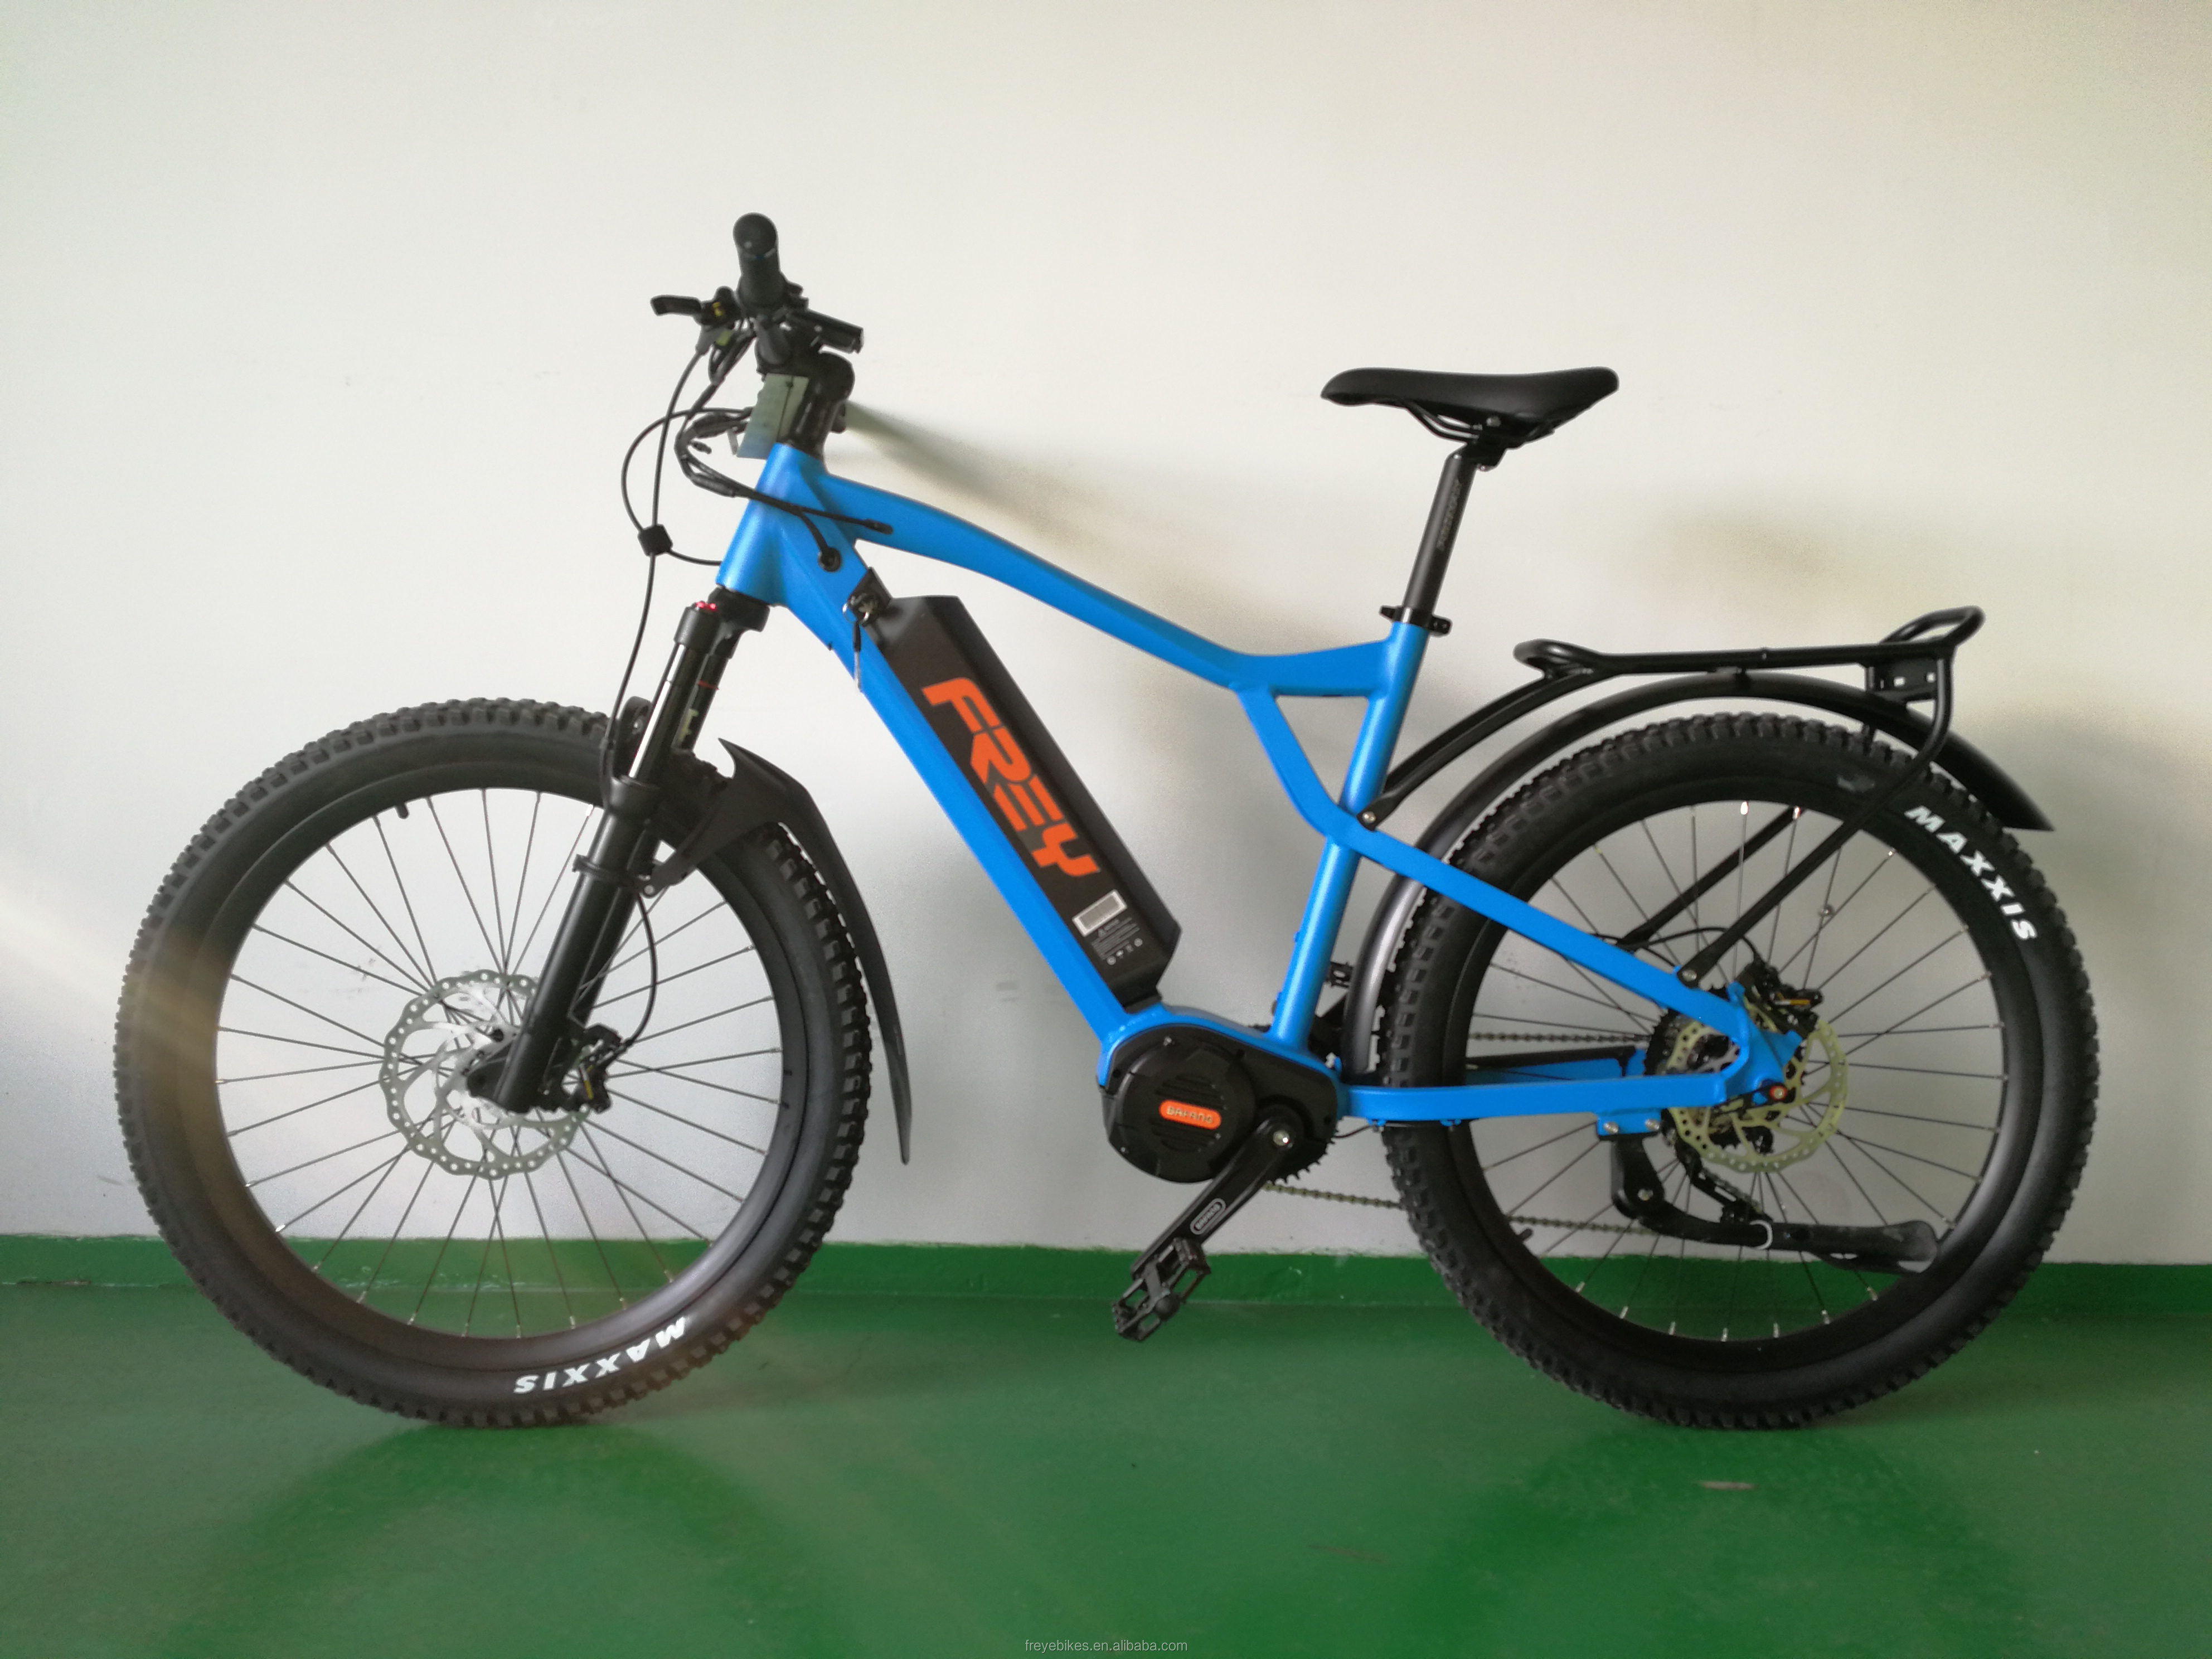 FREY HT1000 48V 1000W Bafang ULTRA G510 mid drive system electric mountain bicycle